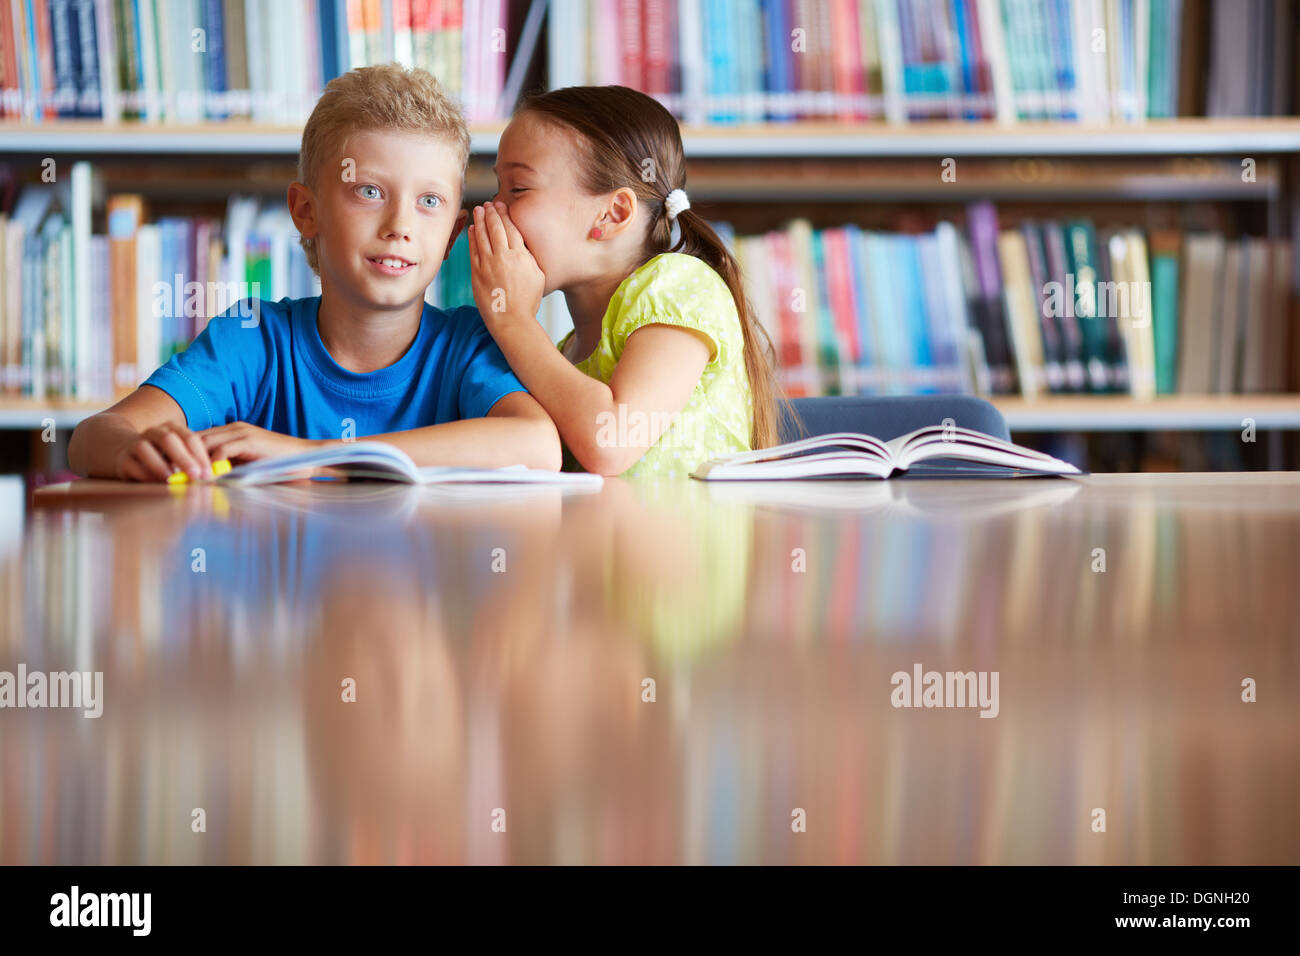 Portrait of cute schoolgirl whispering something to her classmate in library - Stock Image